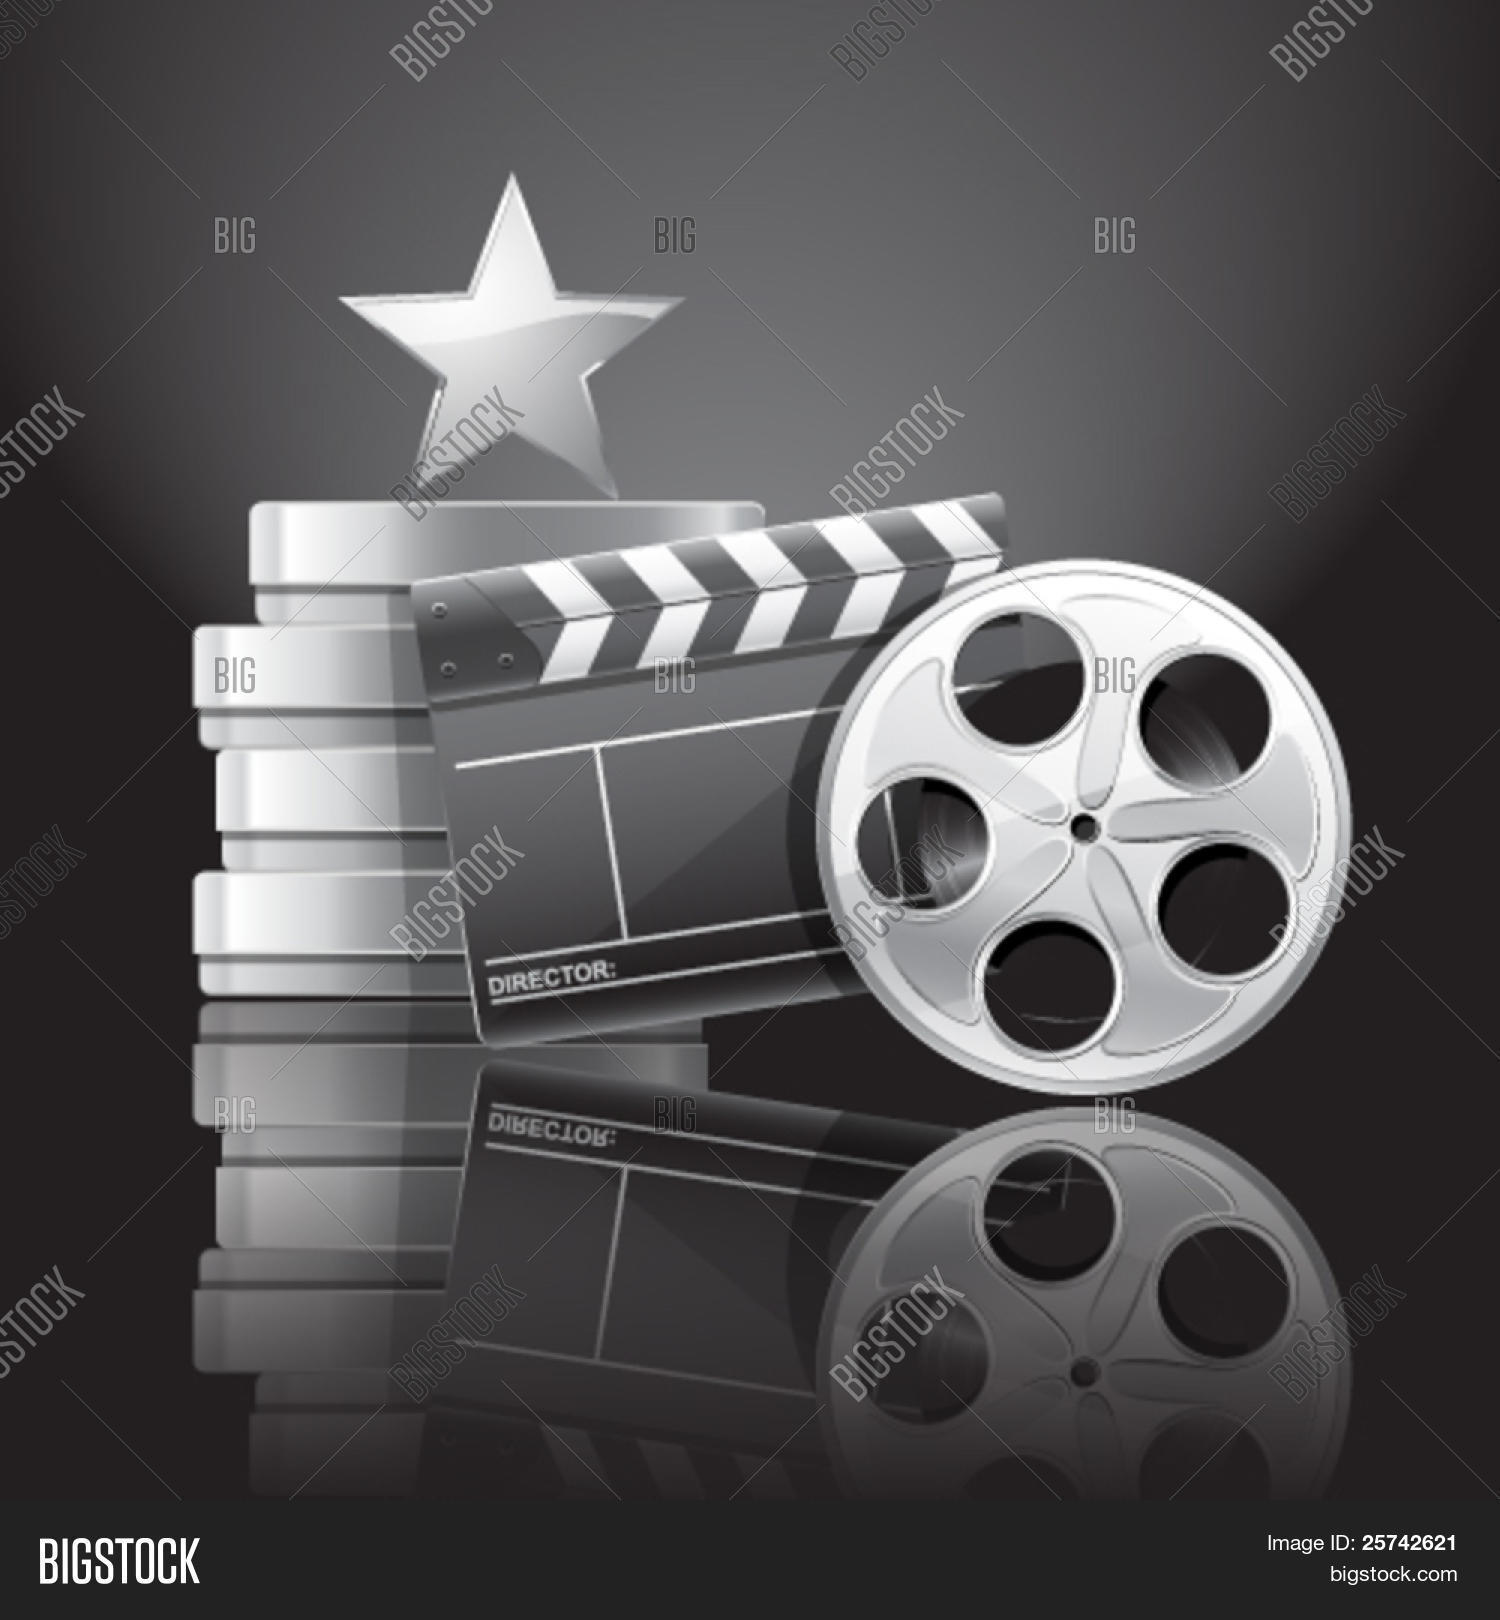 Cinema Composition. Movie Clapper Vector & Photo | Bigstock